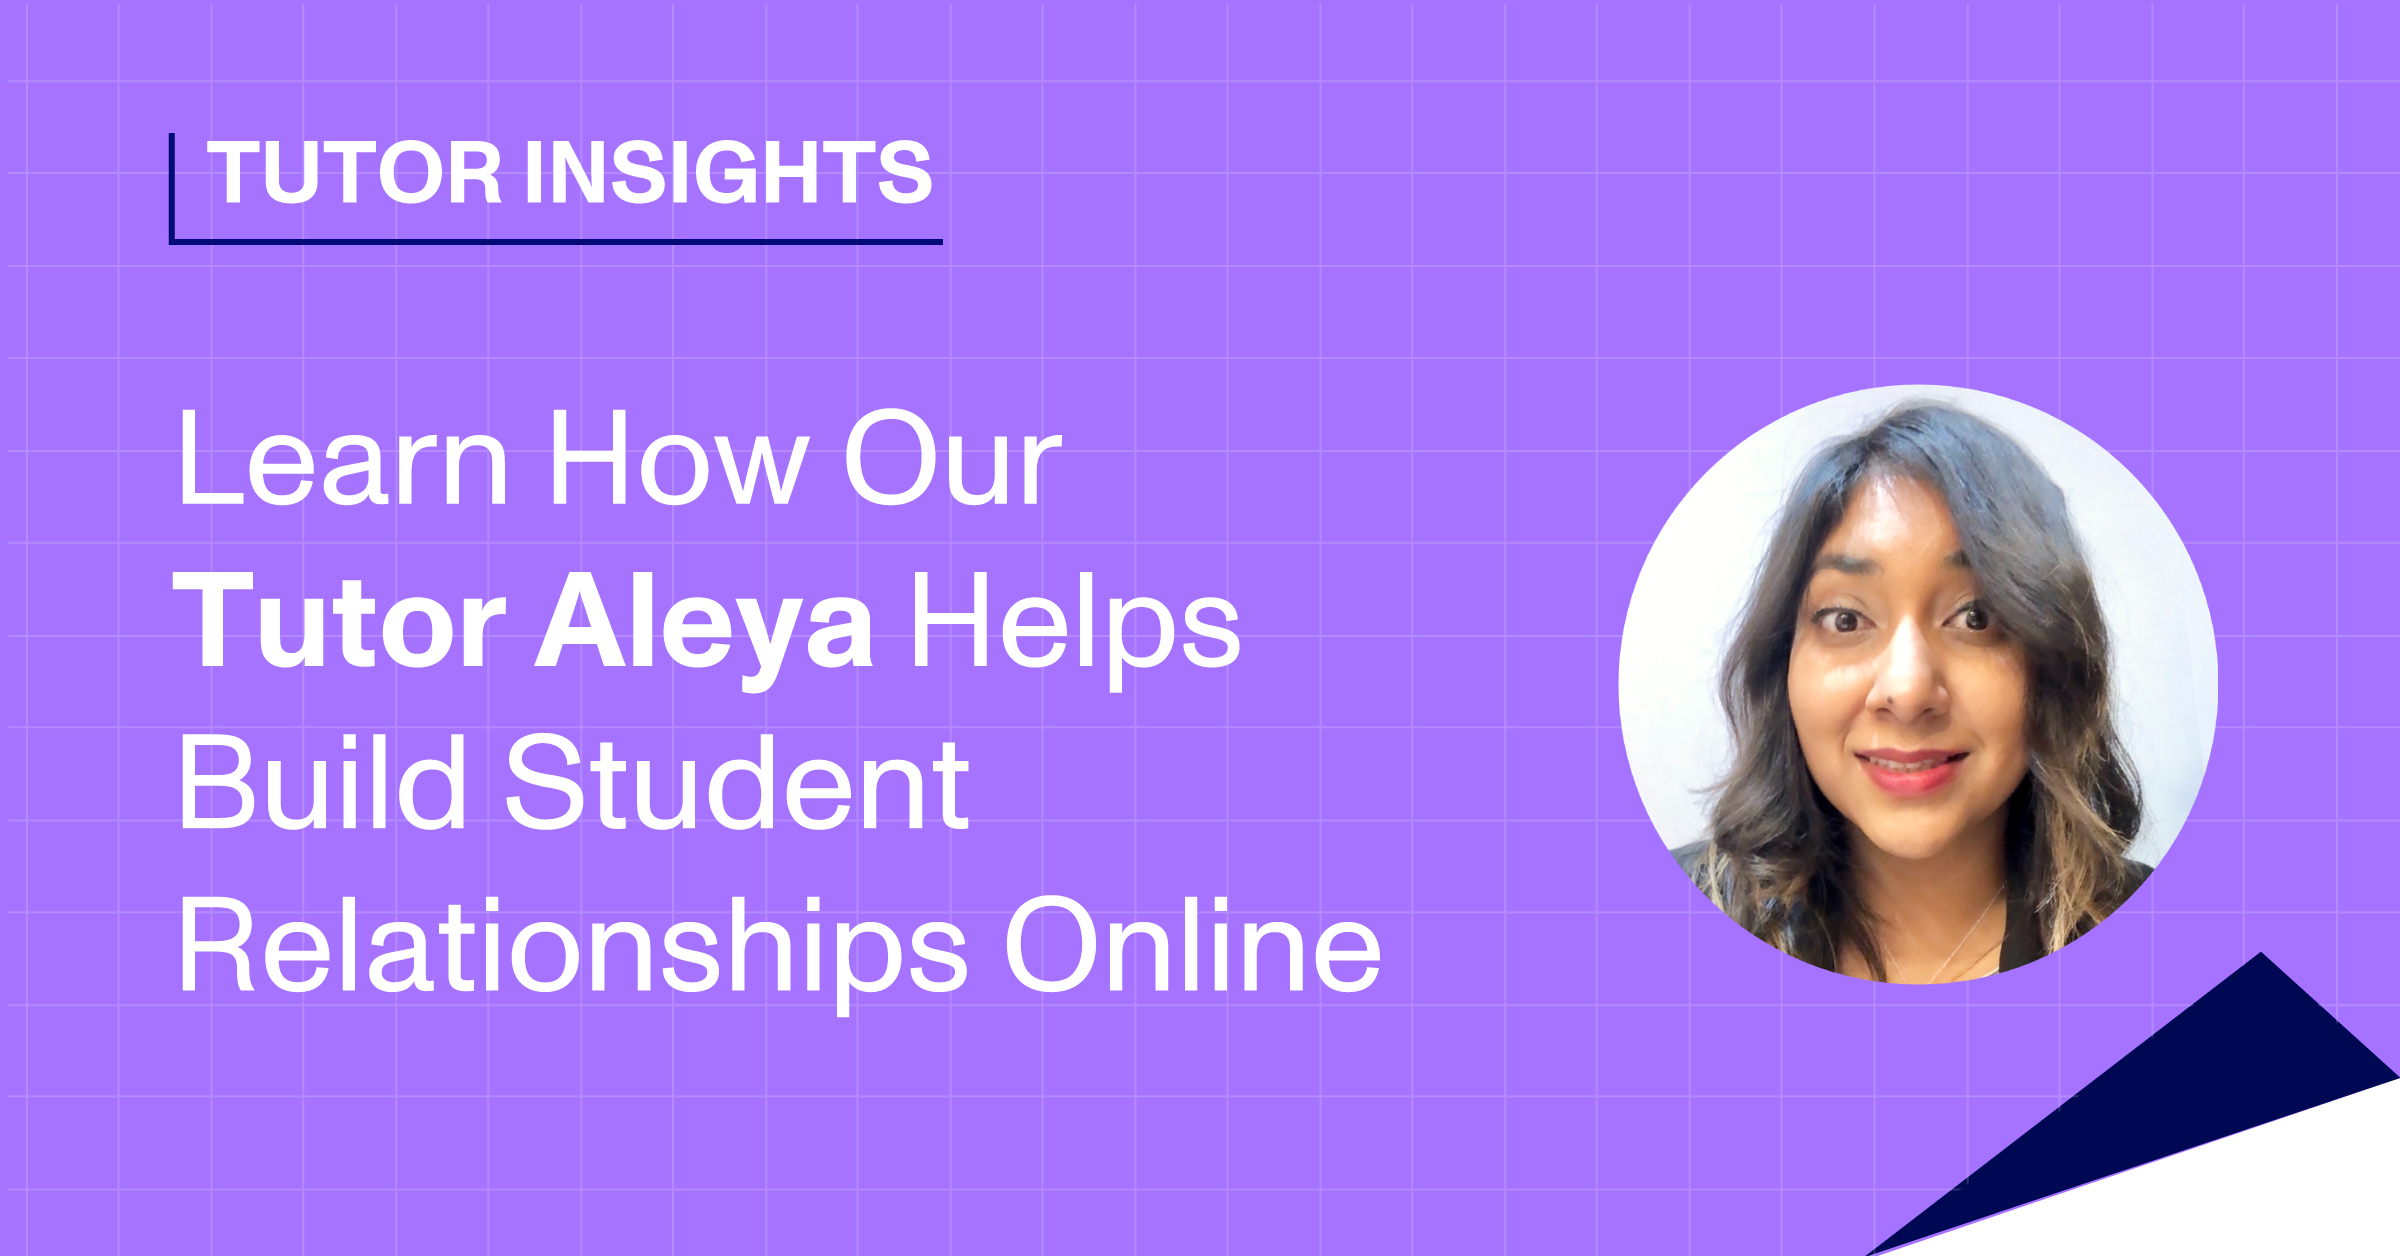 Learn How Our Tutor Aleya Helps Build Student Relationships Online